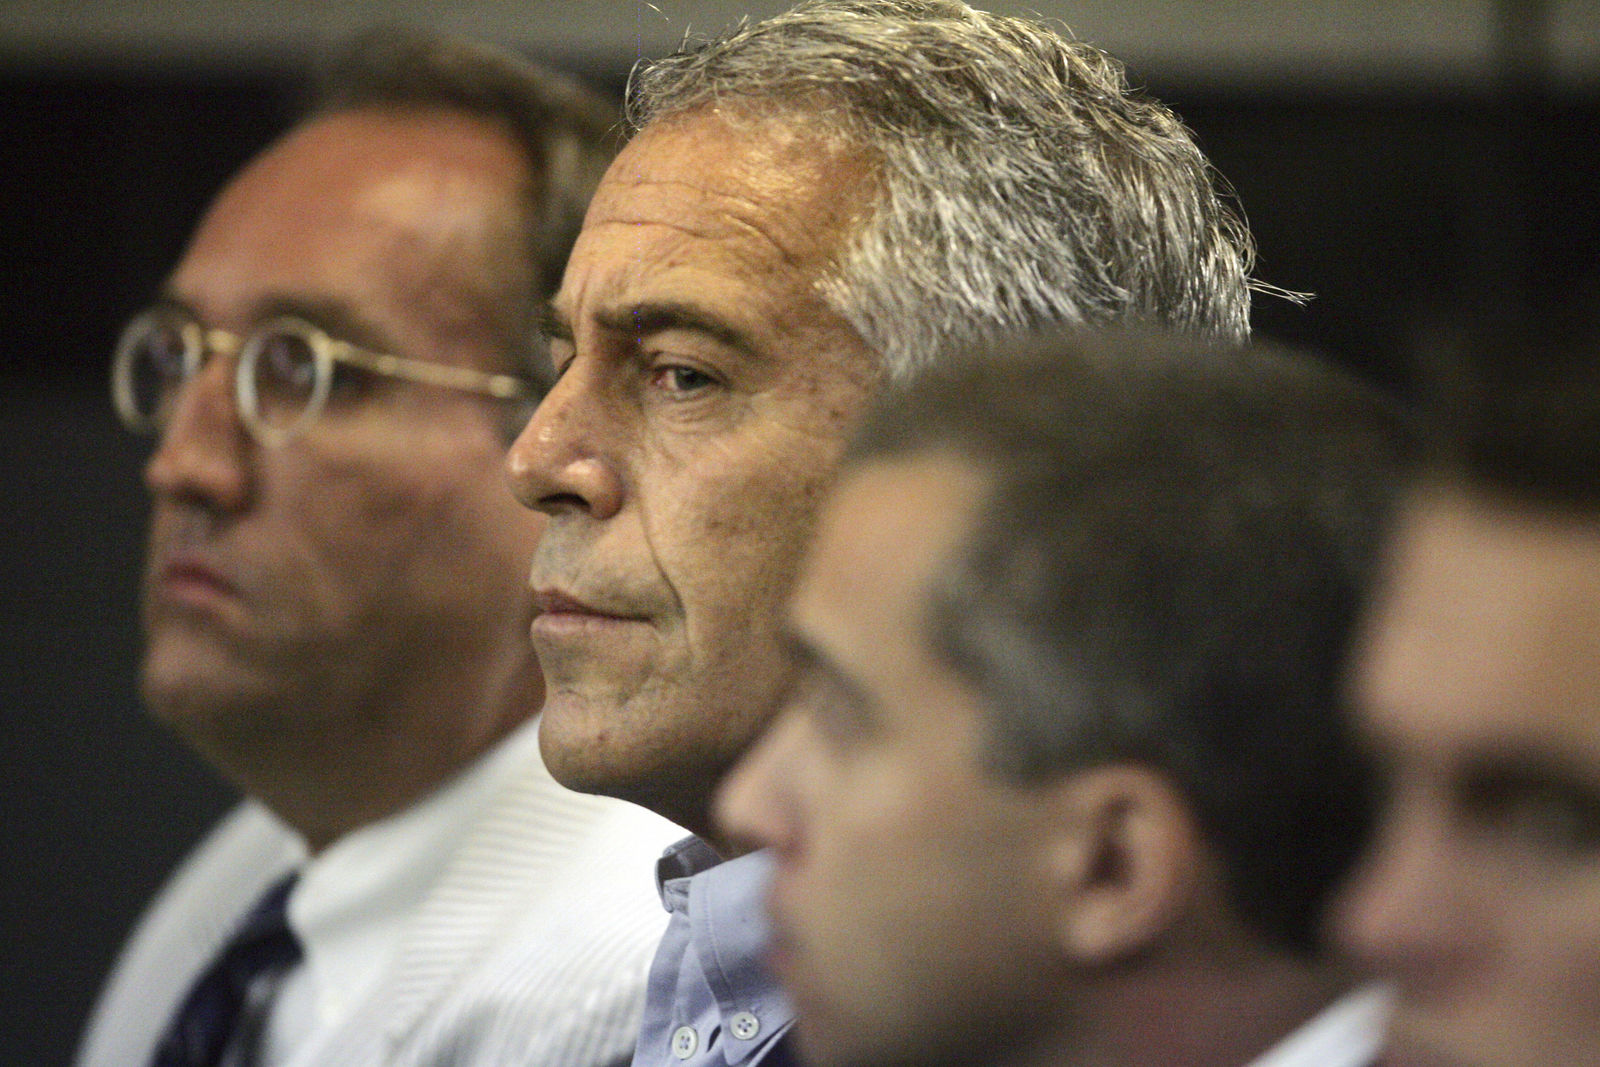 FILE- In this July 30, 2008 file photo, Jeffrey Epstein appears in court in West Palm Beach, Fla. Three women are suing the estate of Epstein and others in lawsuits that cite rape and other forced sex acts while he served a Florida jail sentence and assaults that stretched to 2014. (Uma Sanghvi/Palm Beach Post via AP, File)